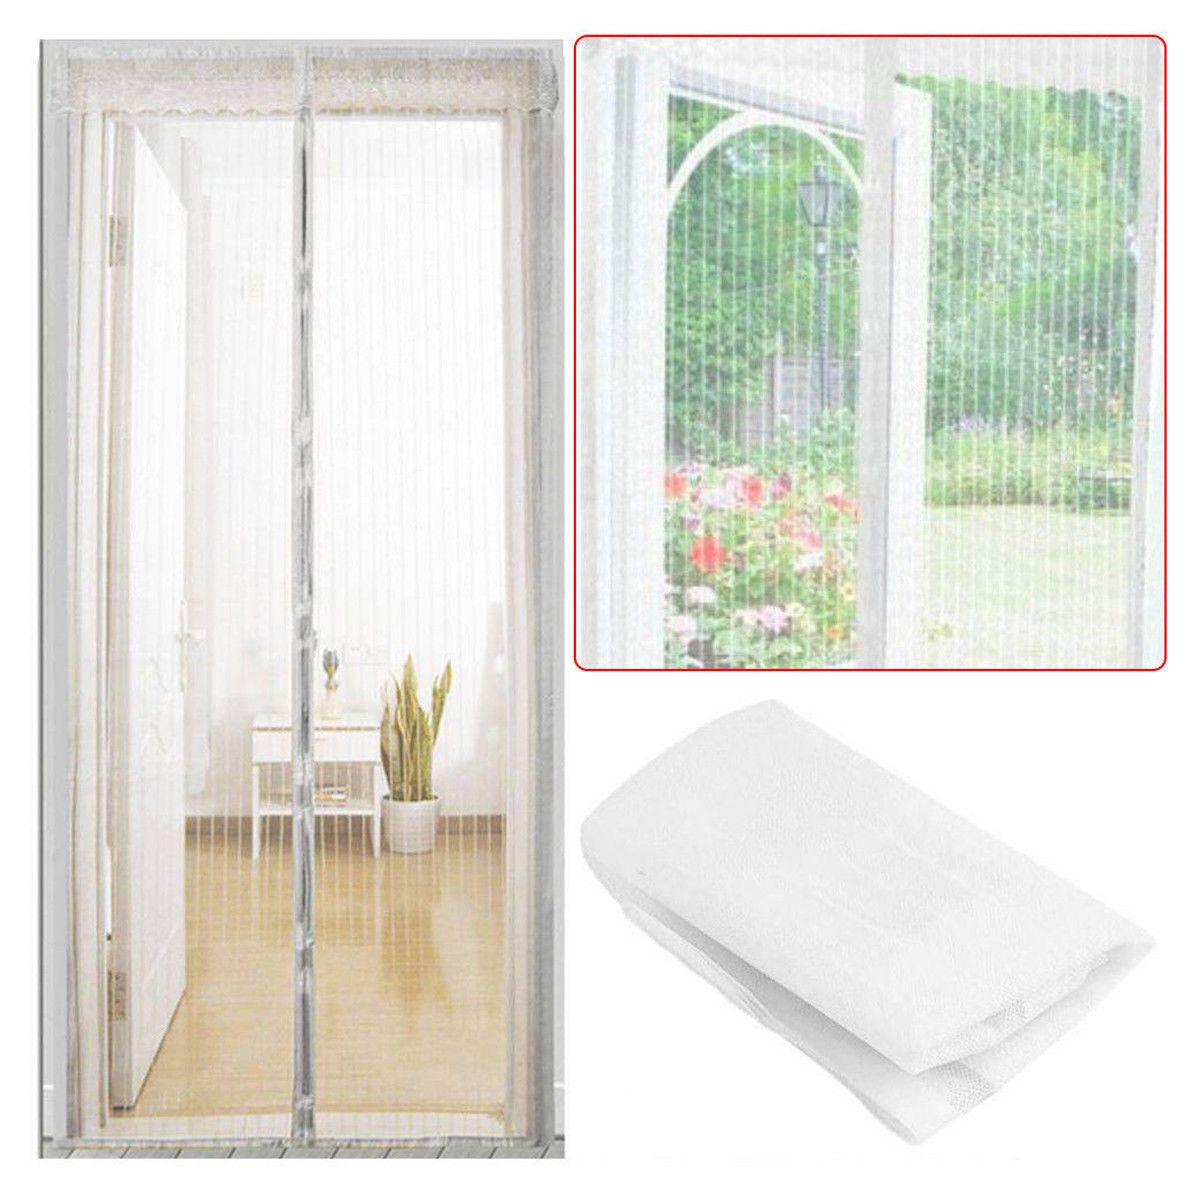 Magic Mesh Mosquito Net, Mosquito Nets & Insect Screens - Image 1